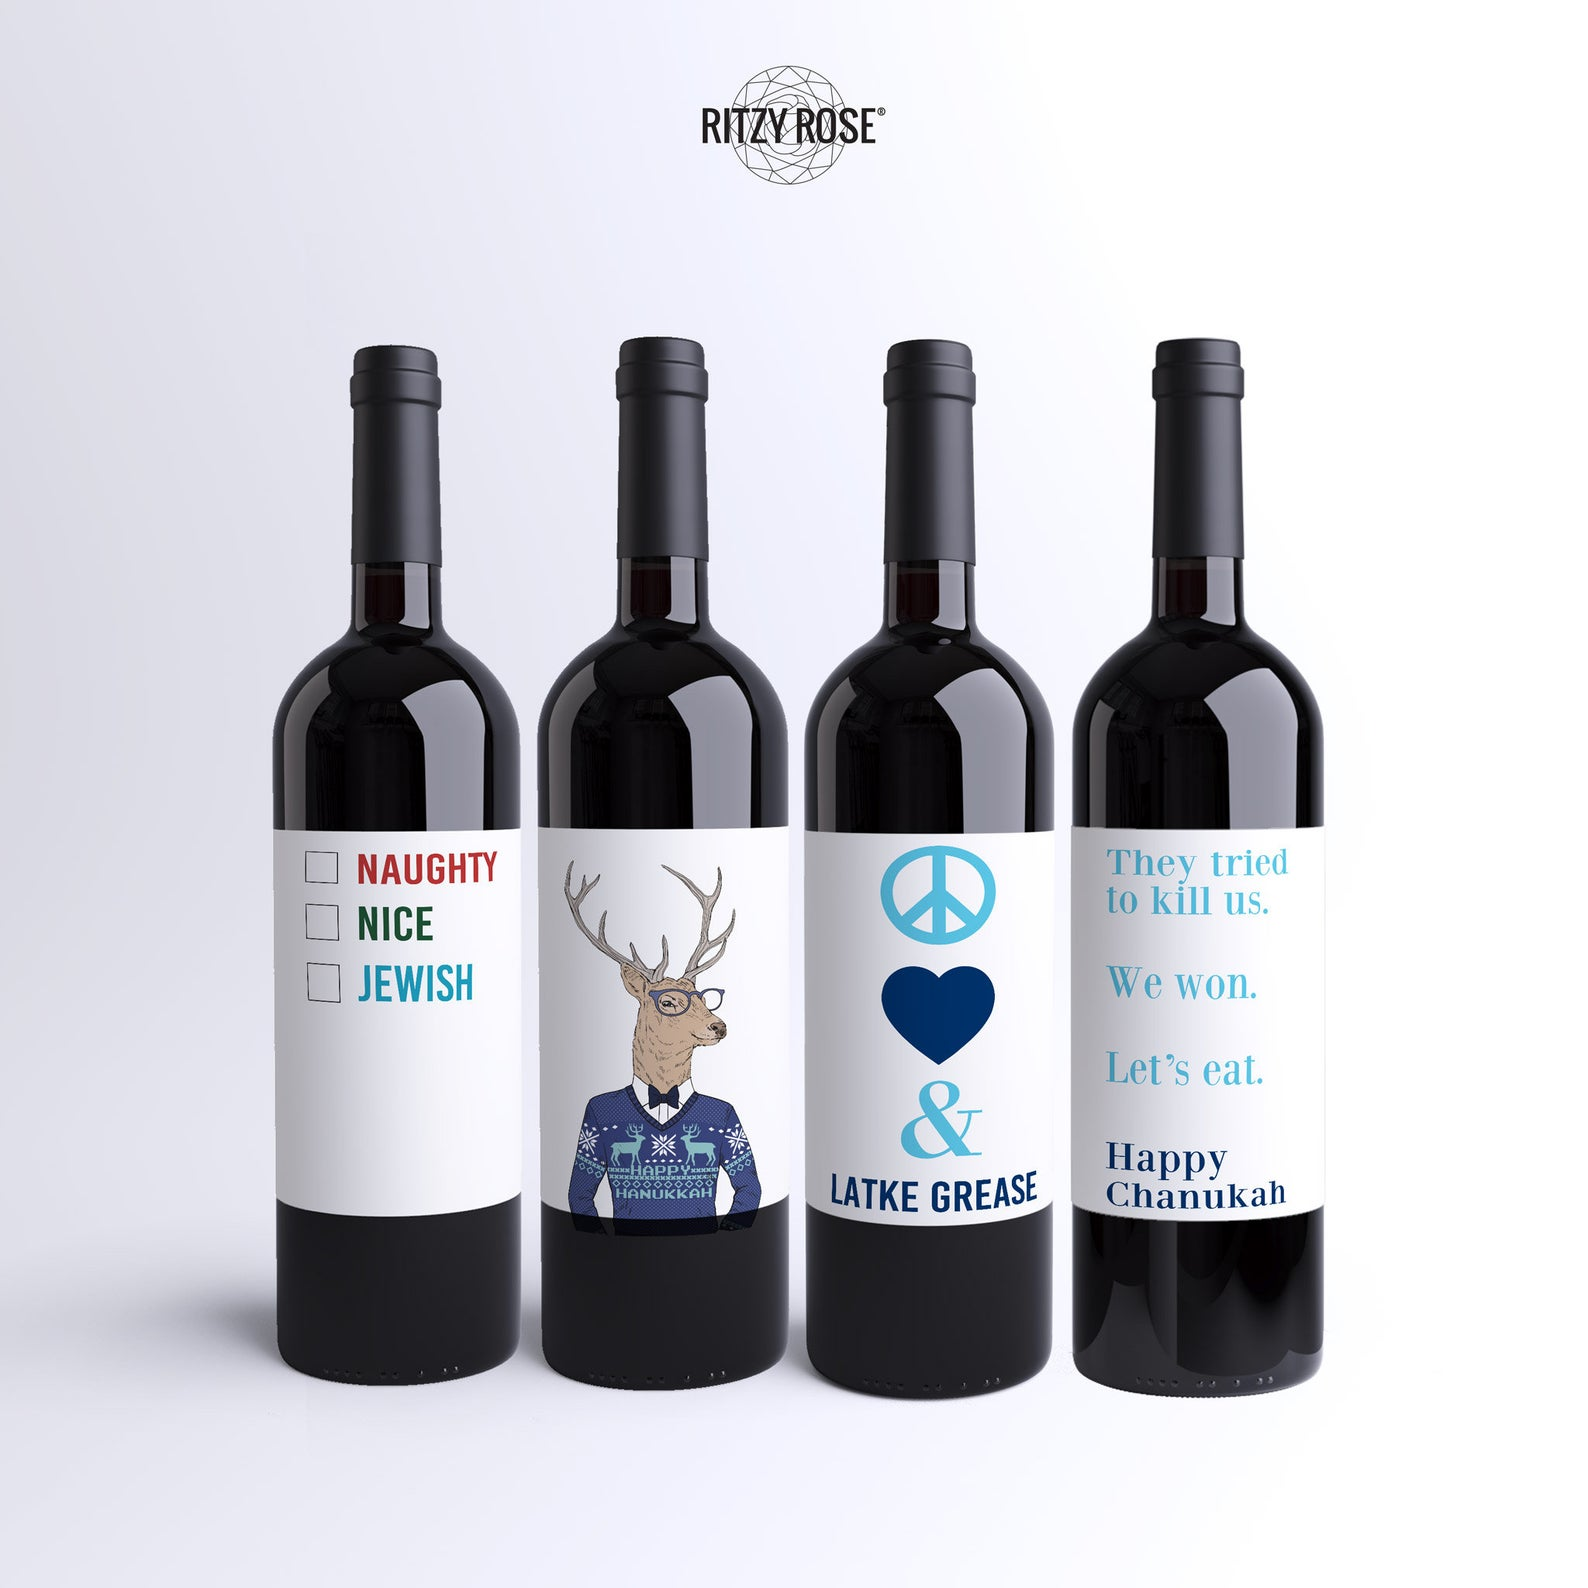 Funny Hanukkah wine labels from the Ritzy Rose: Comes in a set of 8